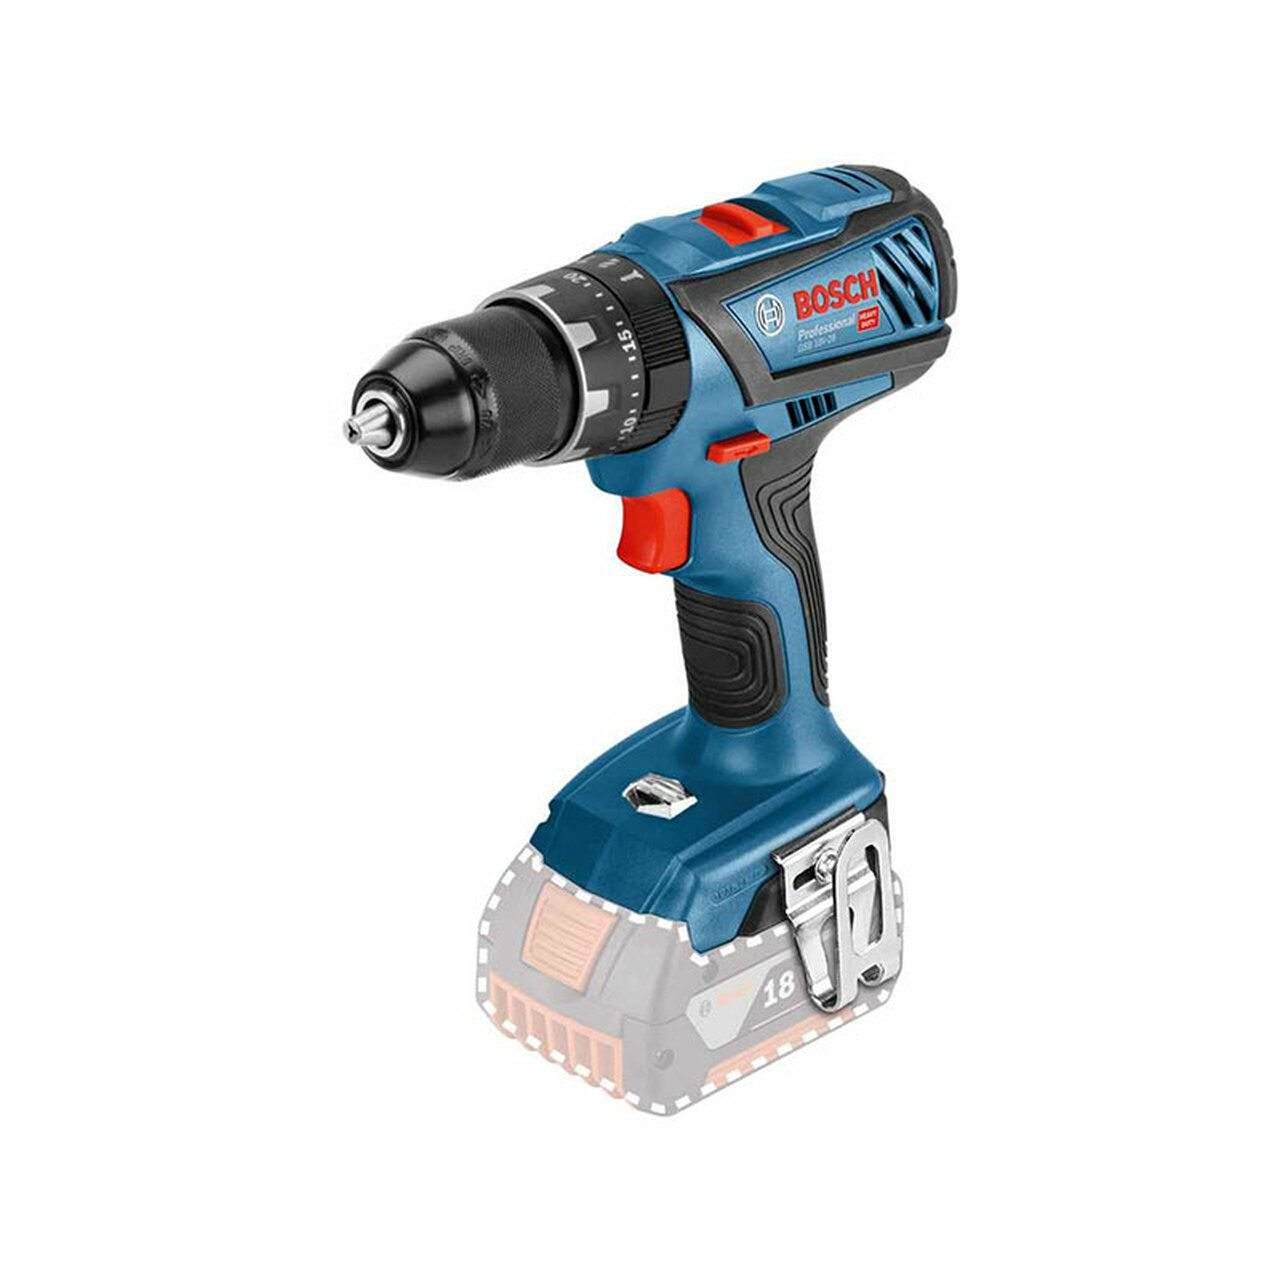 Bosch Professional 18v Combi Drill GSB18V-28 (Body Only) Professional performer in the 18 V category - with impact drilling function